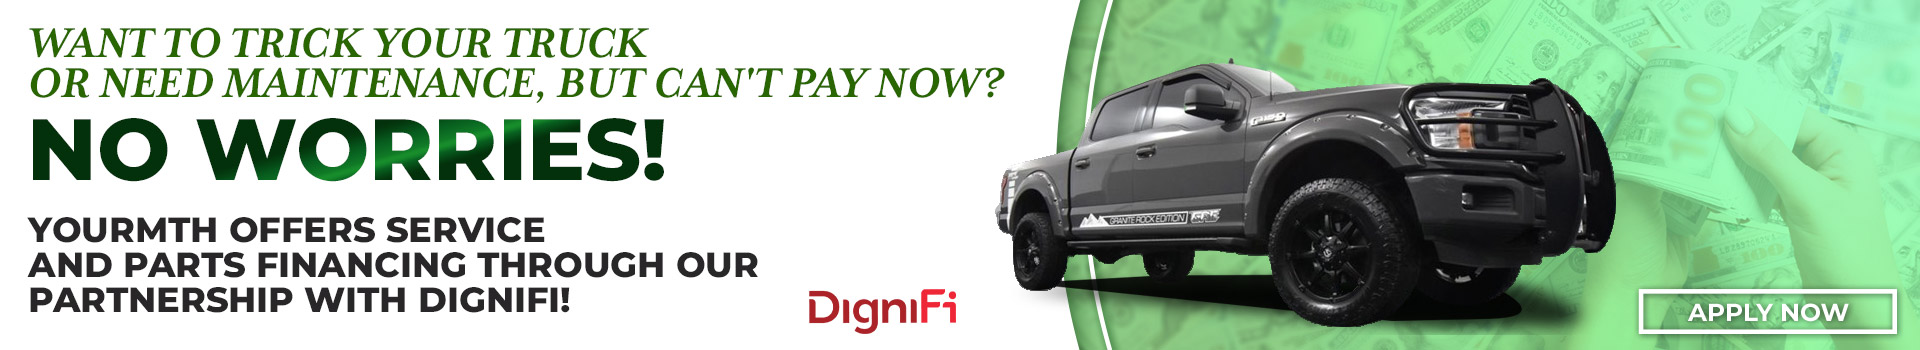 Finance with Dignifi Banner 0421.jpg